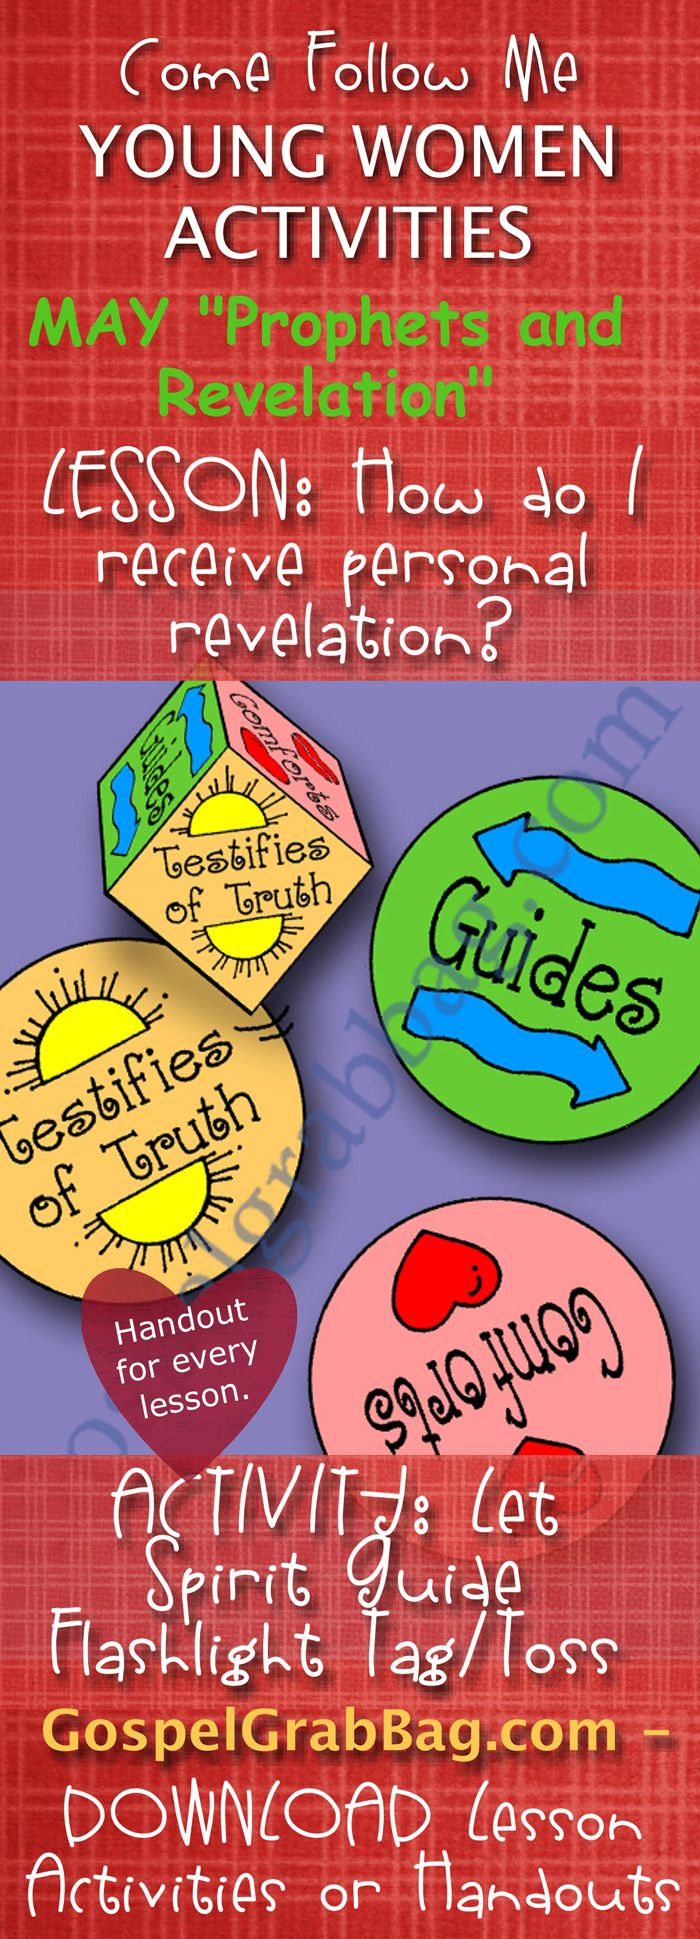 """REVELATION – HOLY GHOST: Come Follow Me – LDS Young Women Activities, MAY Theme: """"Prophets and Revelation"""", LESSON: How do I receive personal revelation? handout for every lesson, ACTIVITY: Scripture Underlining guide and pencil pocket, download from gospelgrabbag.com"""